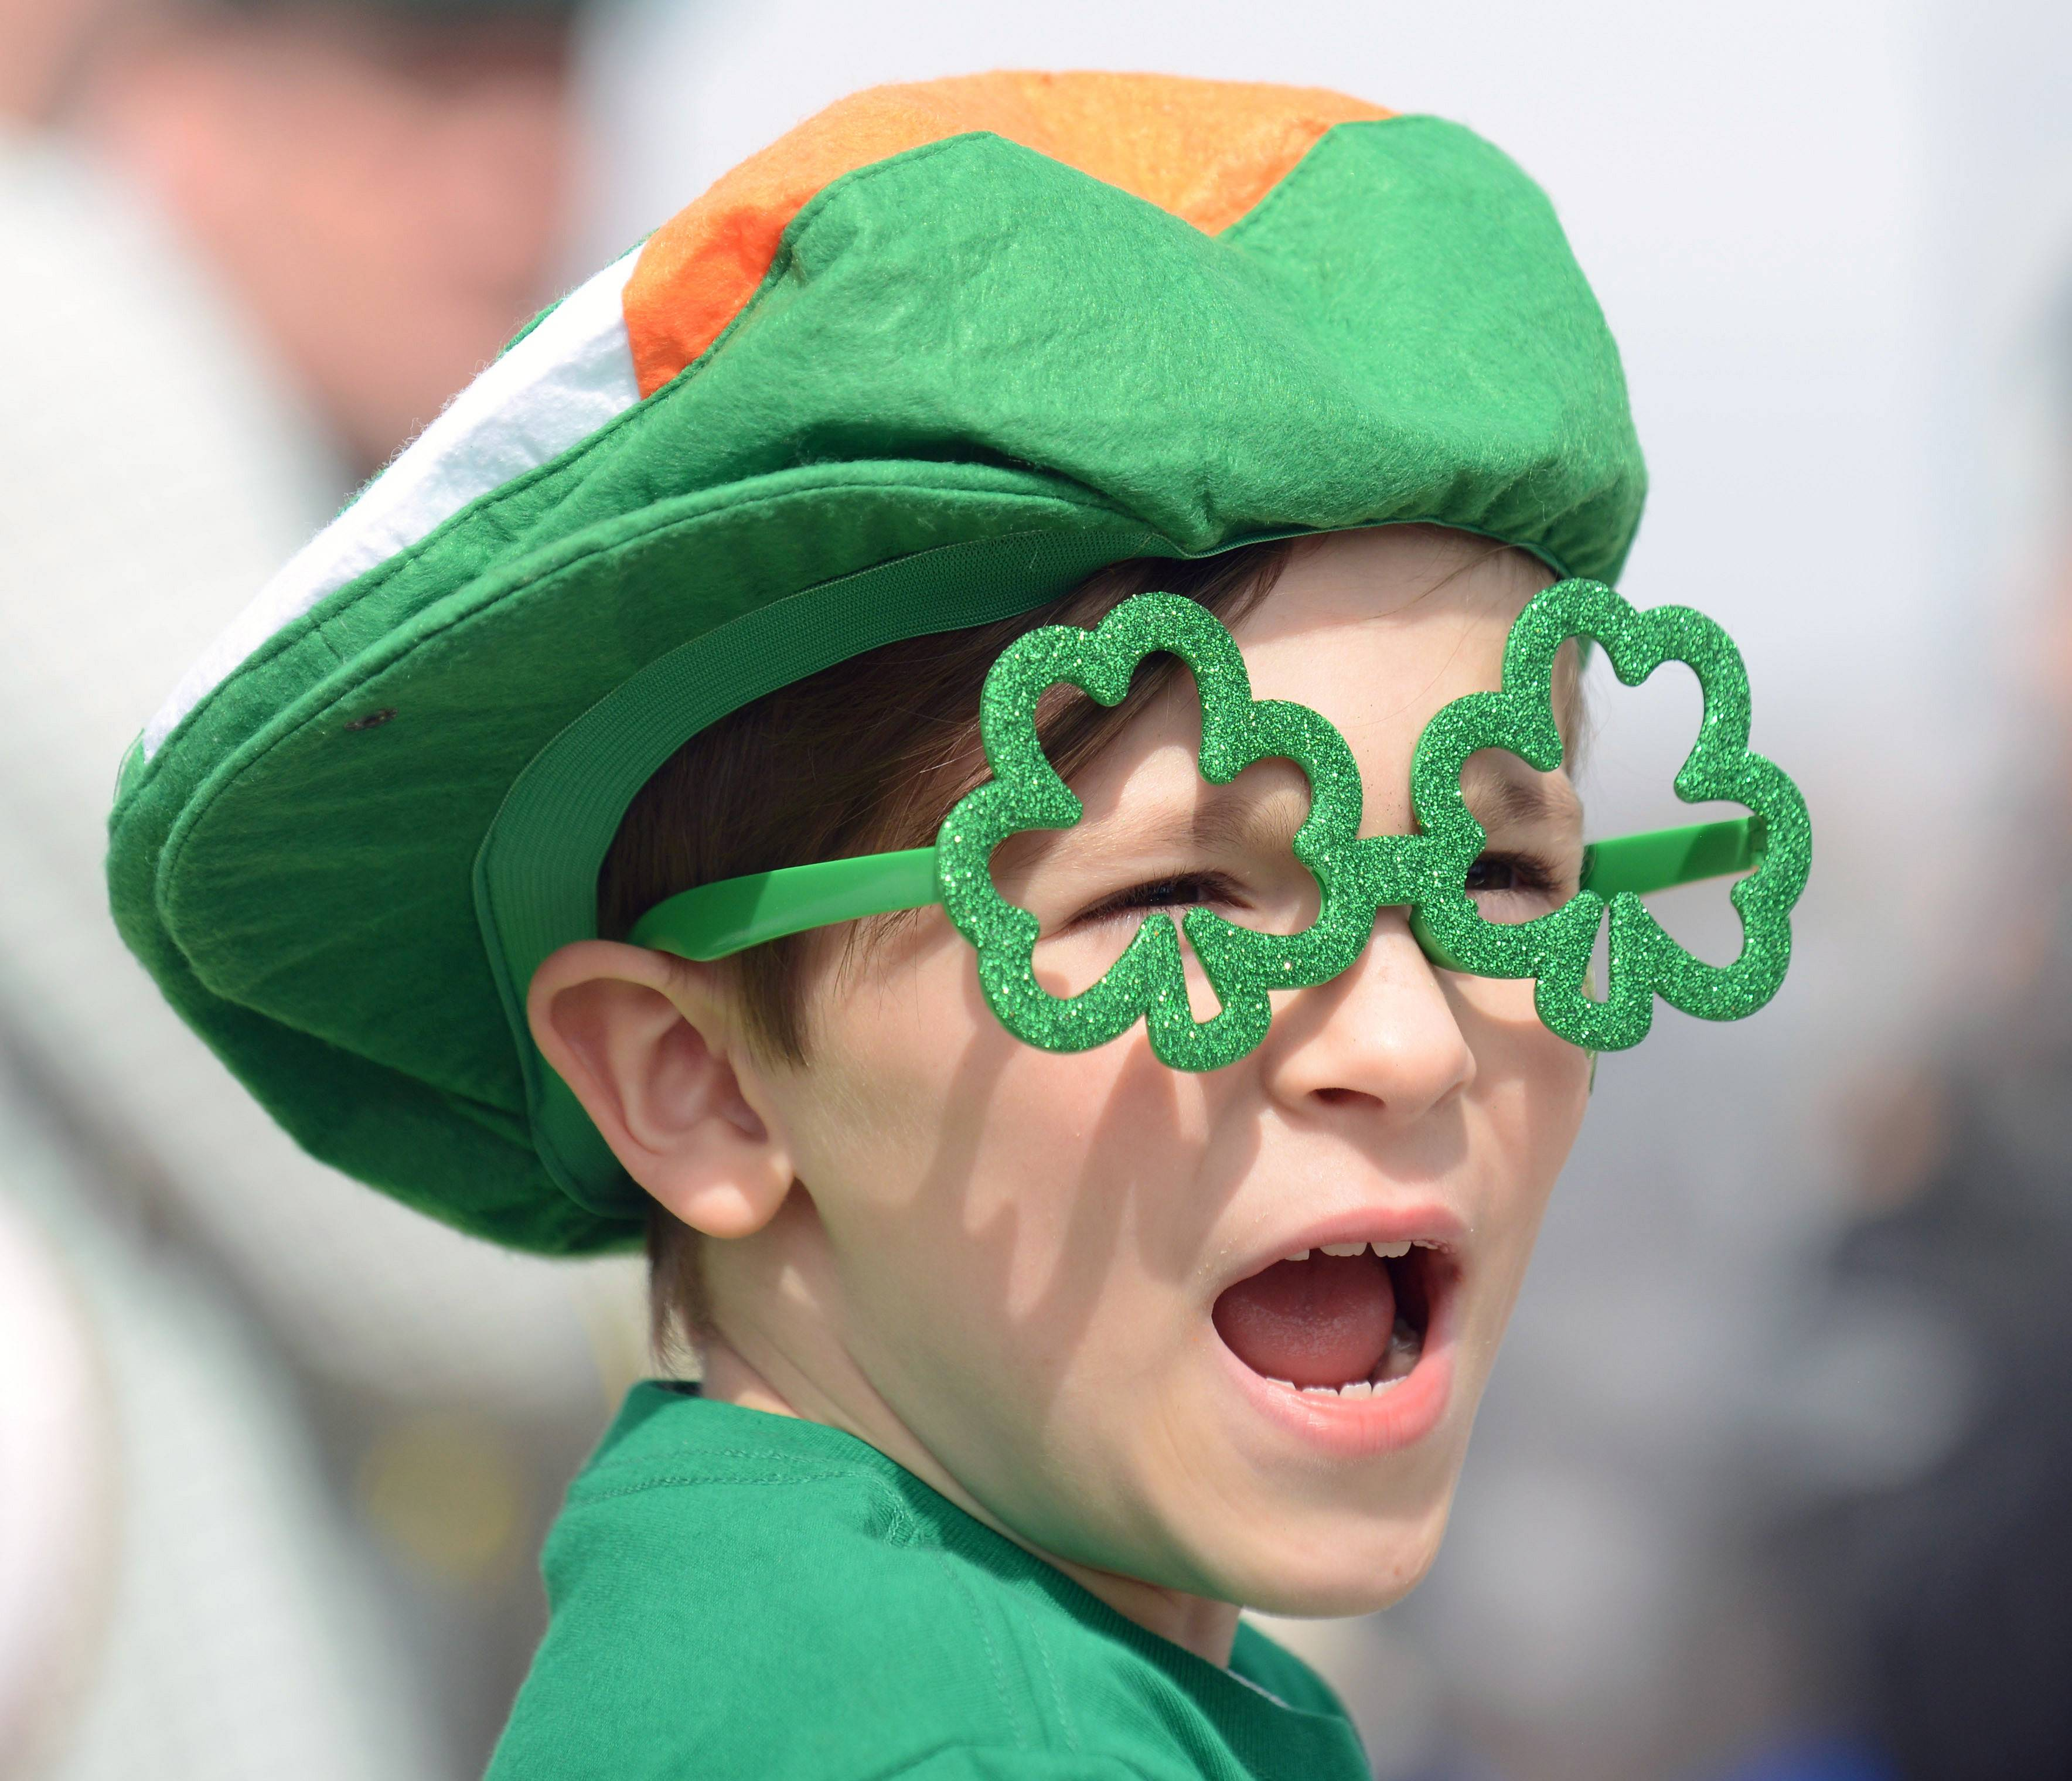 Max Wojtowycz, 7, of Algonquin has a jaw dropping reaction to the start of the St. Patrick's Day parade in East Dundee Saturday. This is his second year attending the parade.